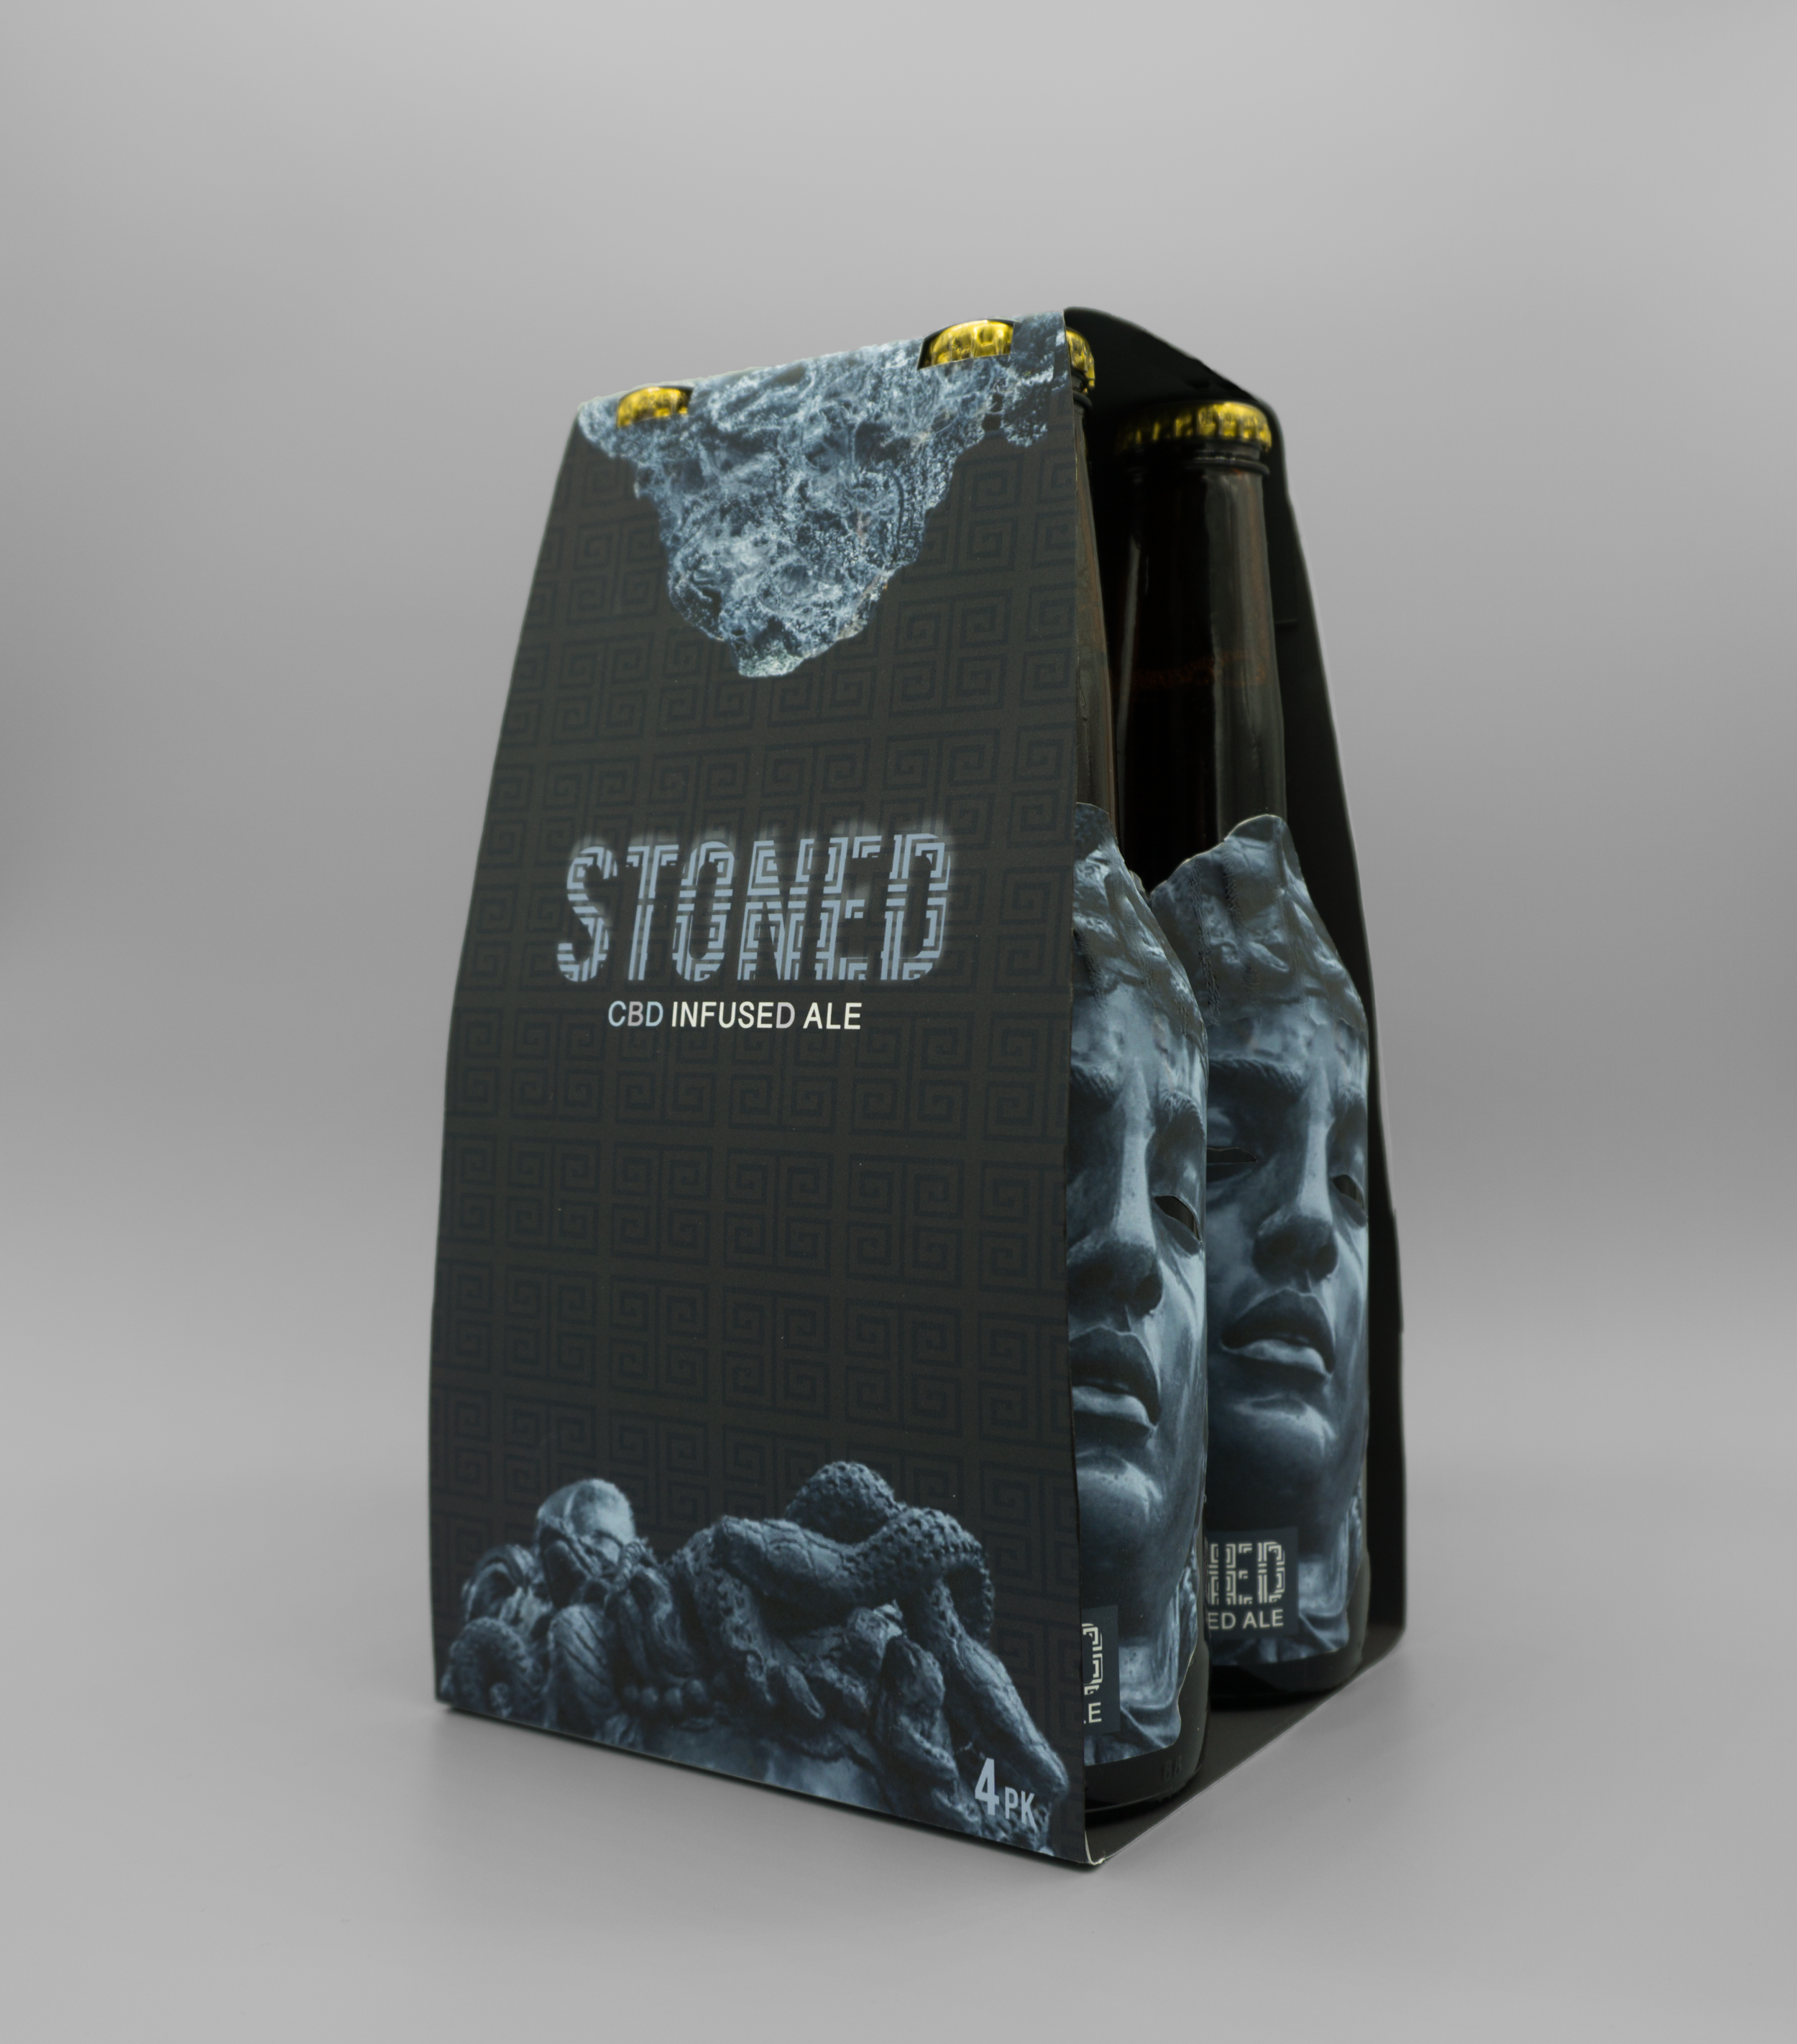 Stoned 4pk.png